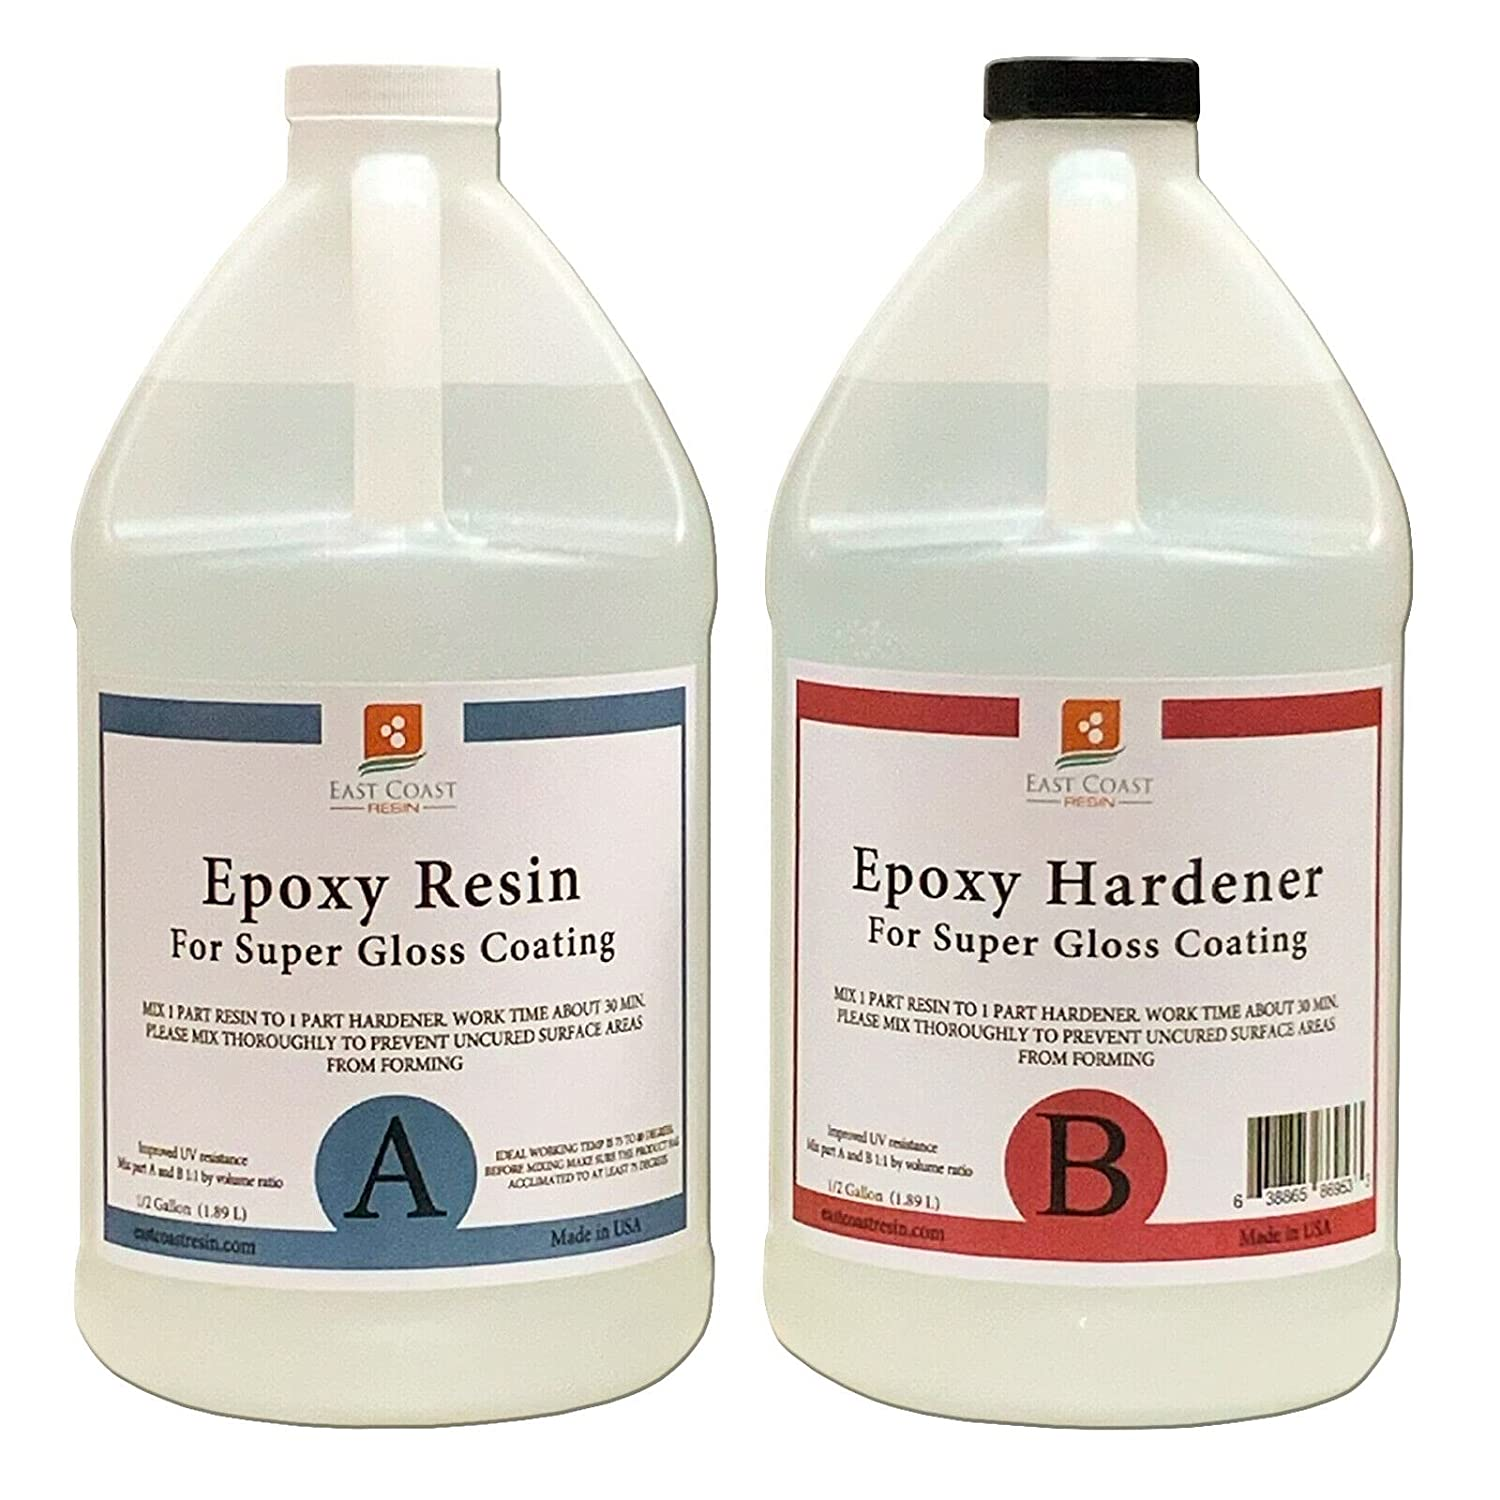 2 Pcs of EPOXY Resin 1 Super Gloss Max 65% OFF price kit Coating for Gal